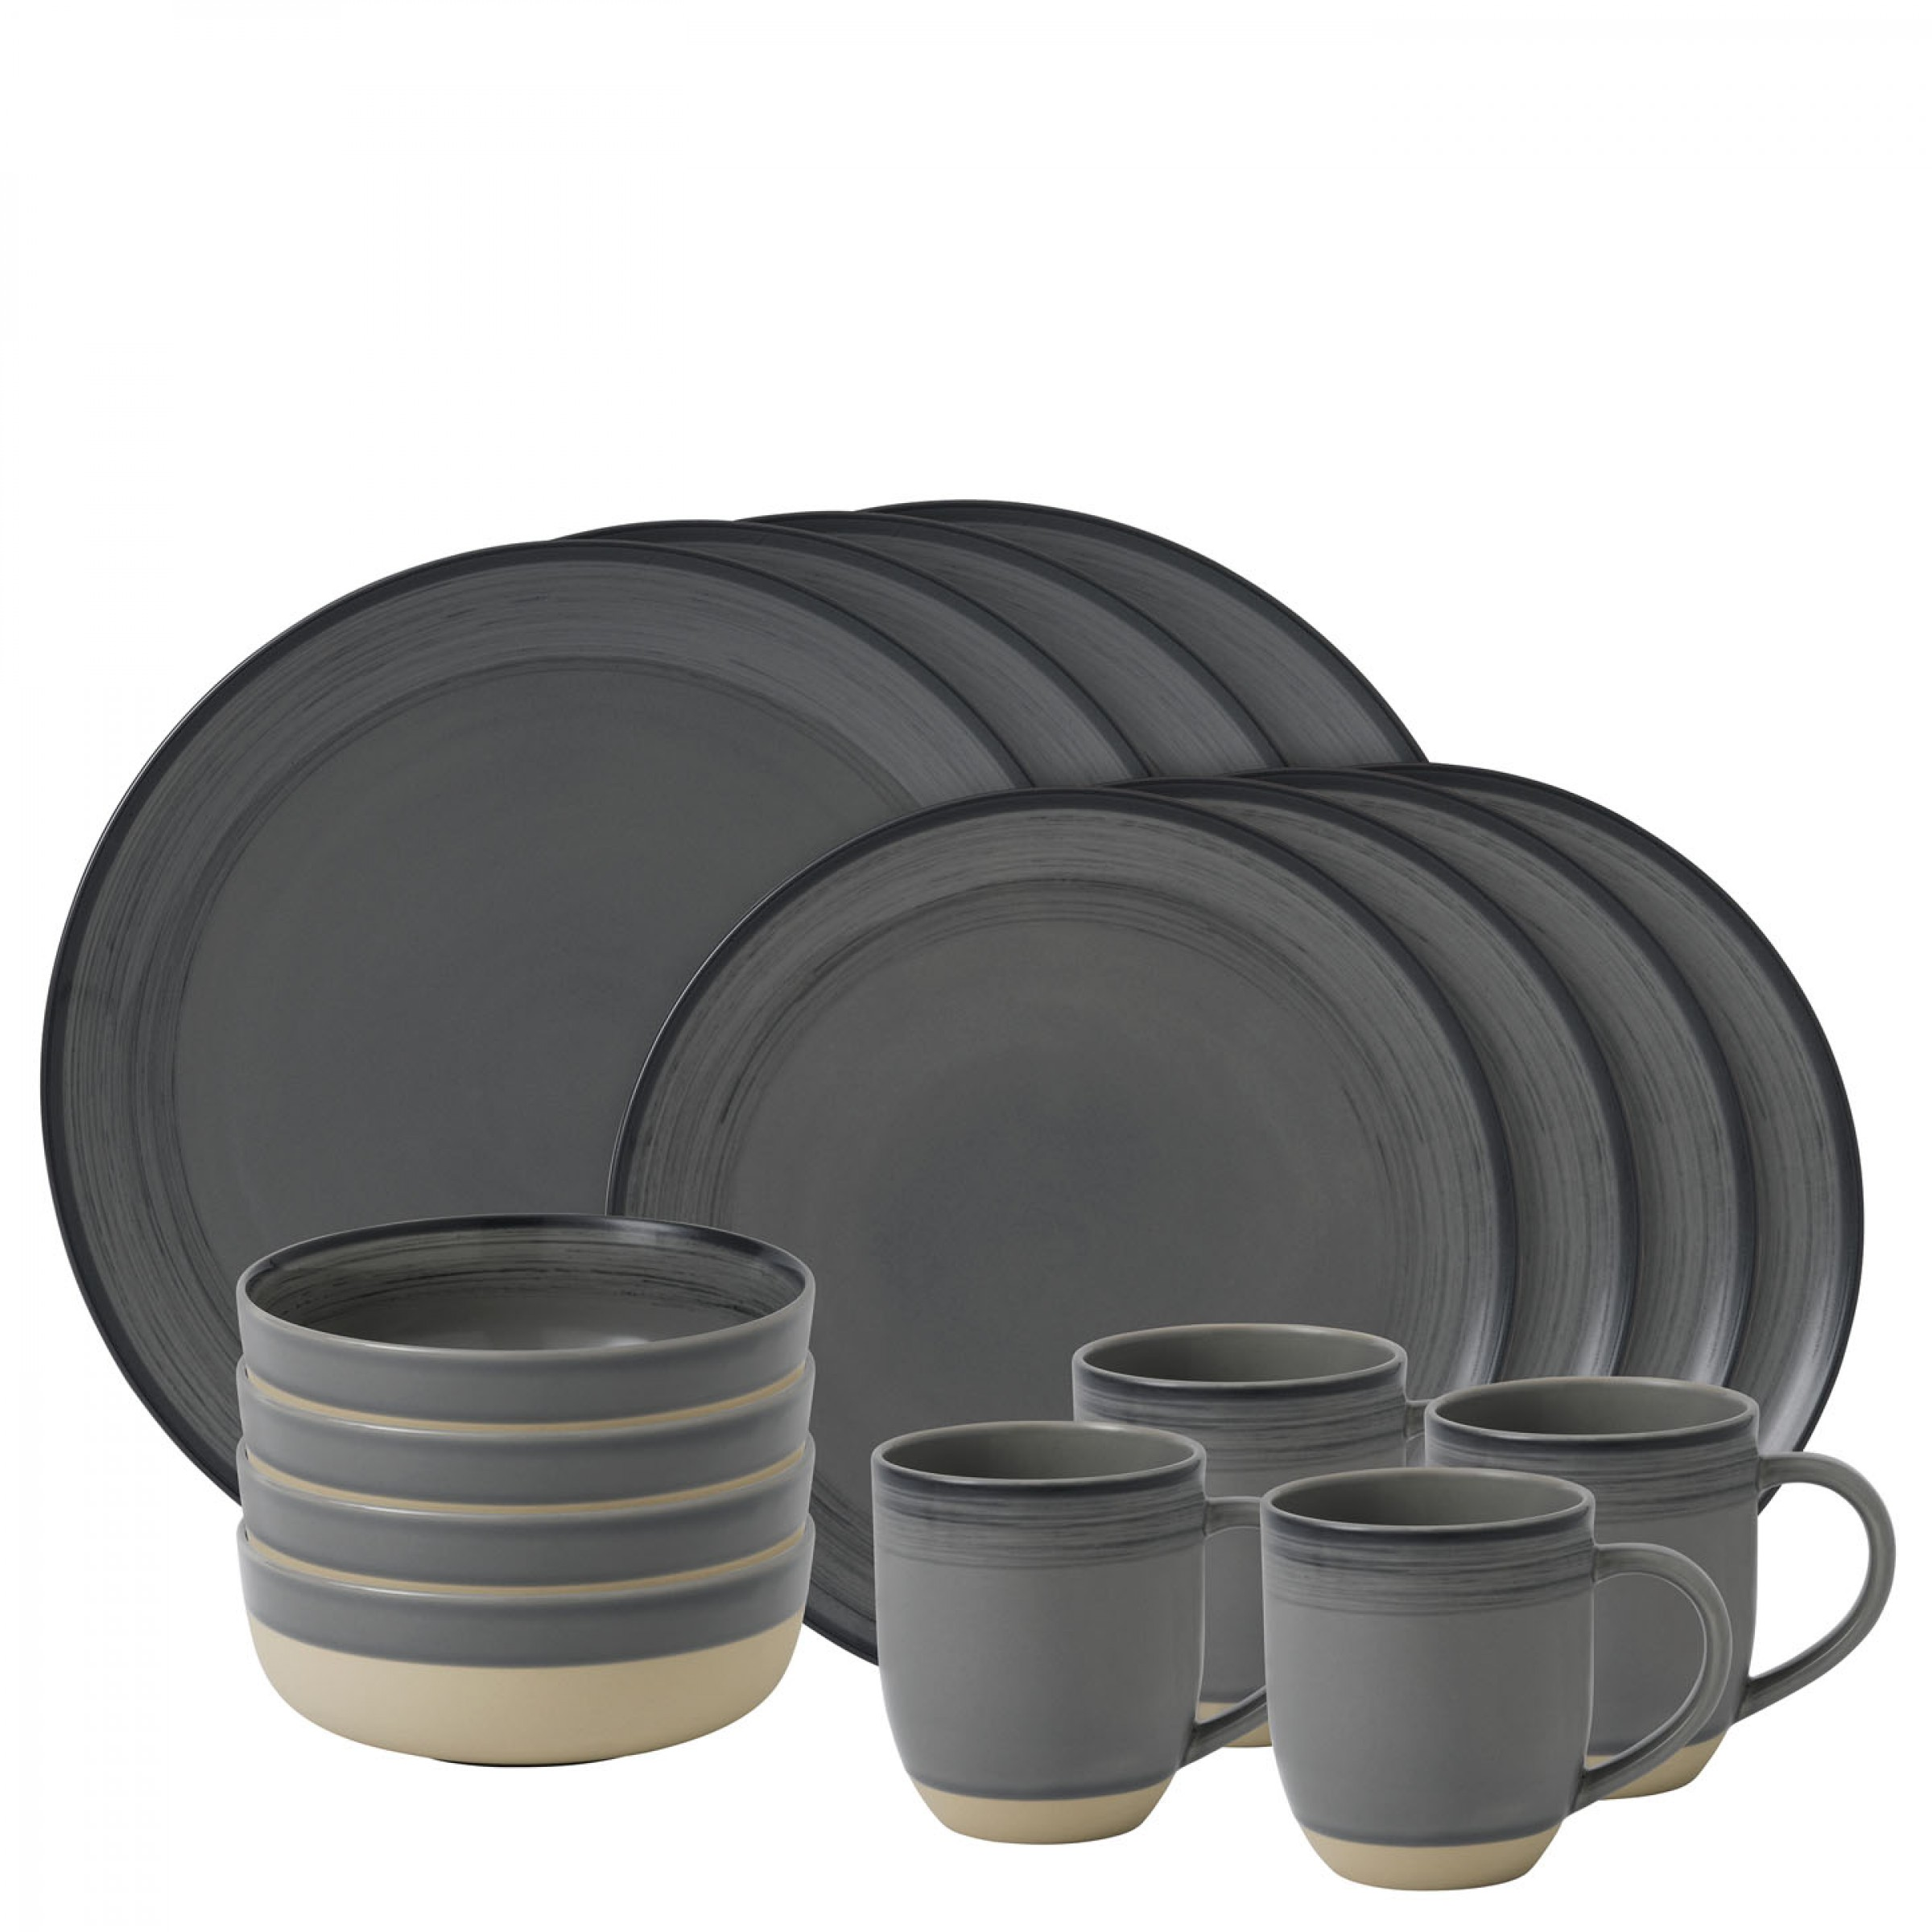 ED Brushed Glaze Charcoal Grey Dinnerware | 16pc Box Set